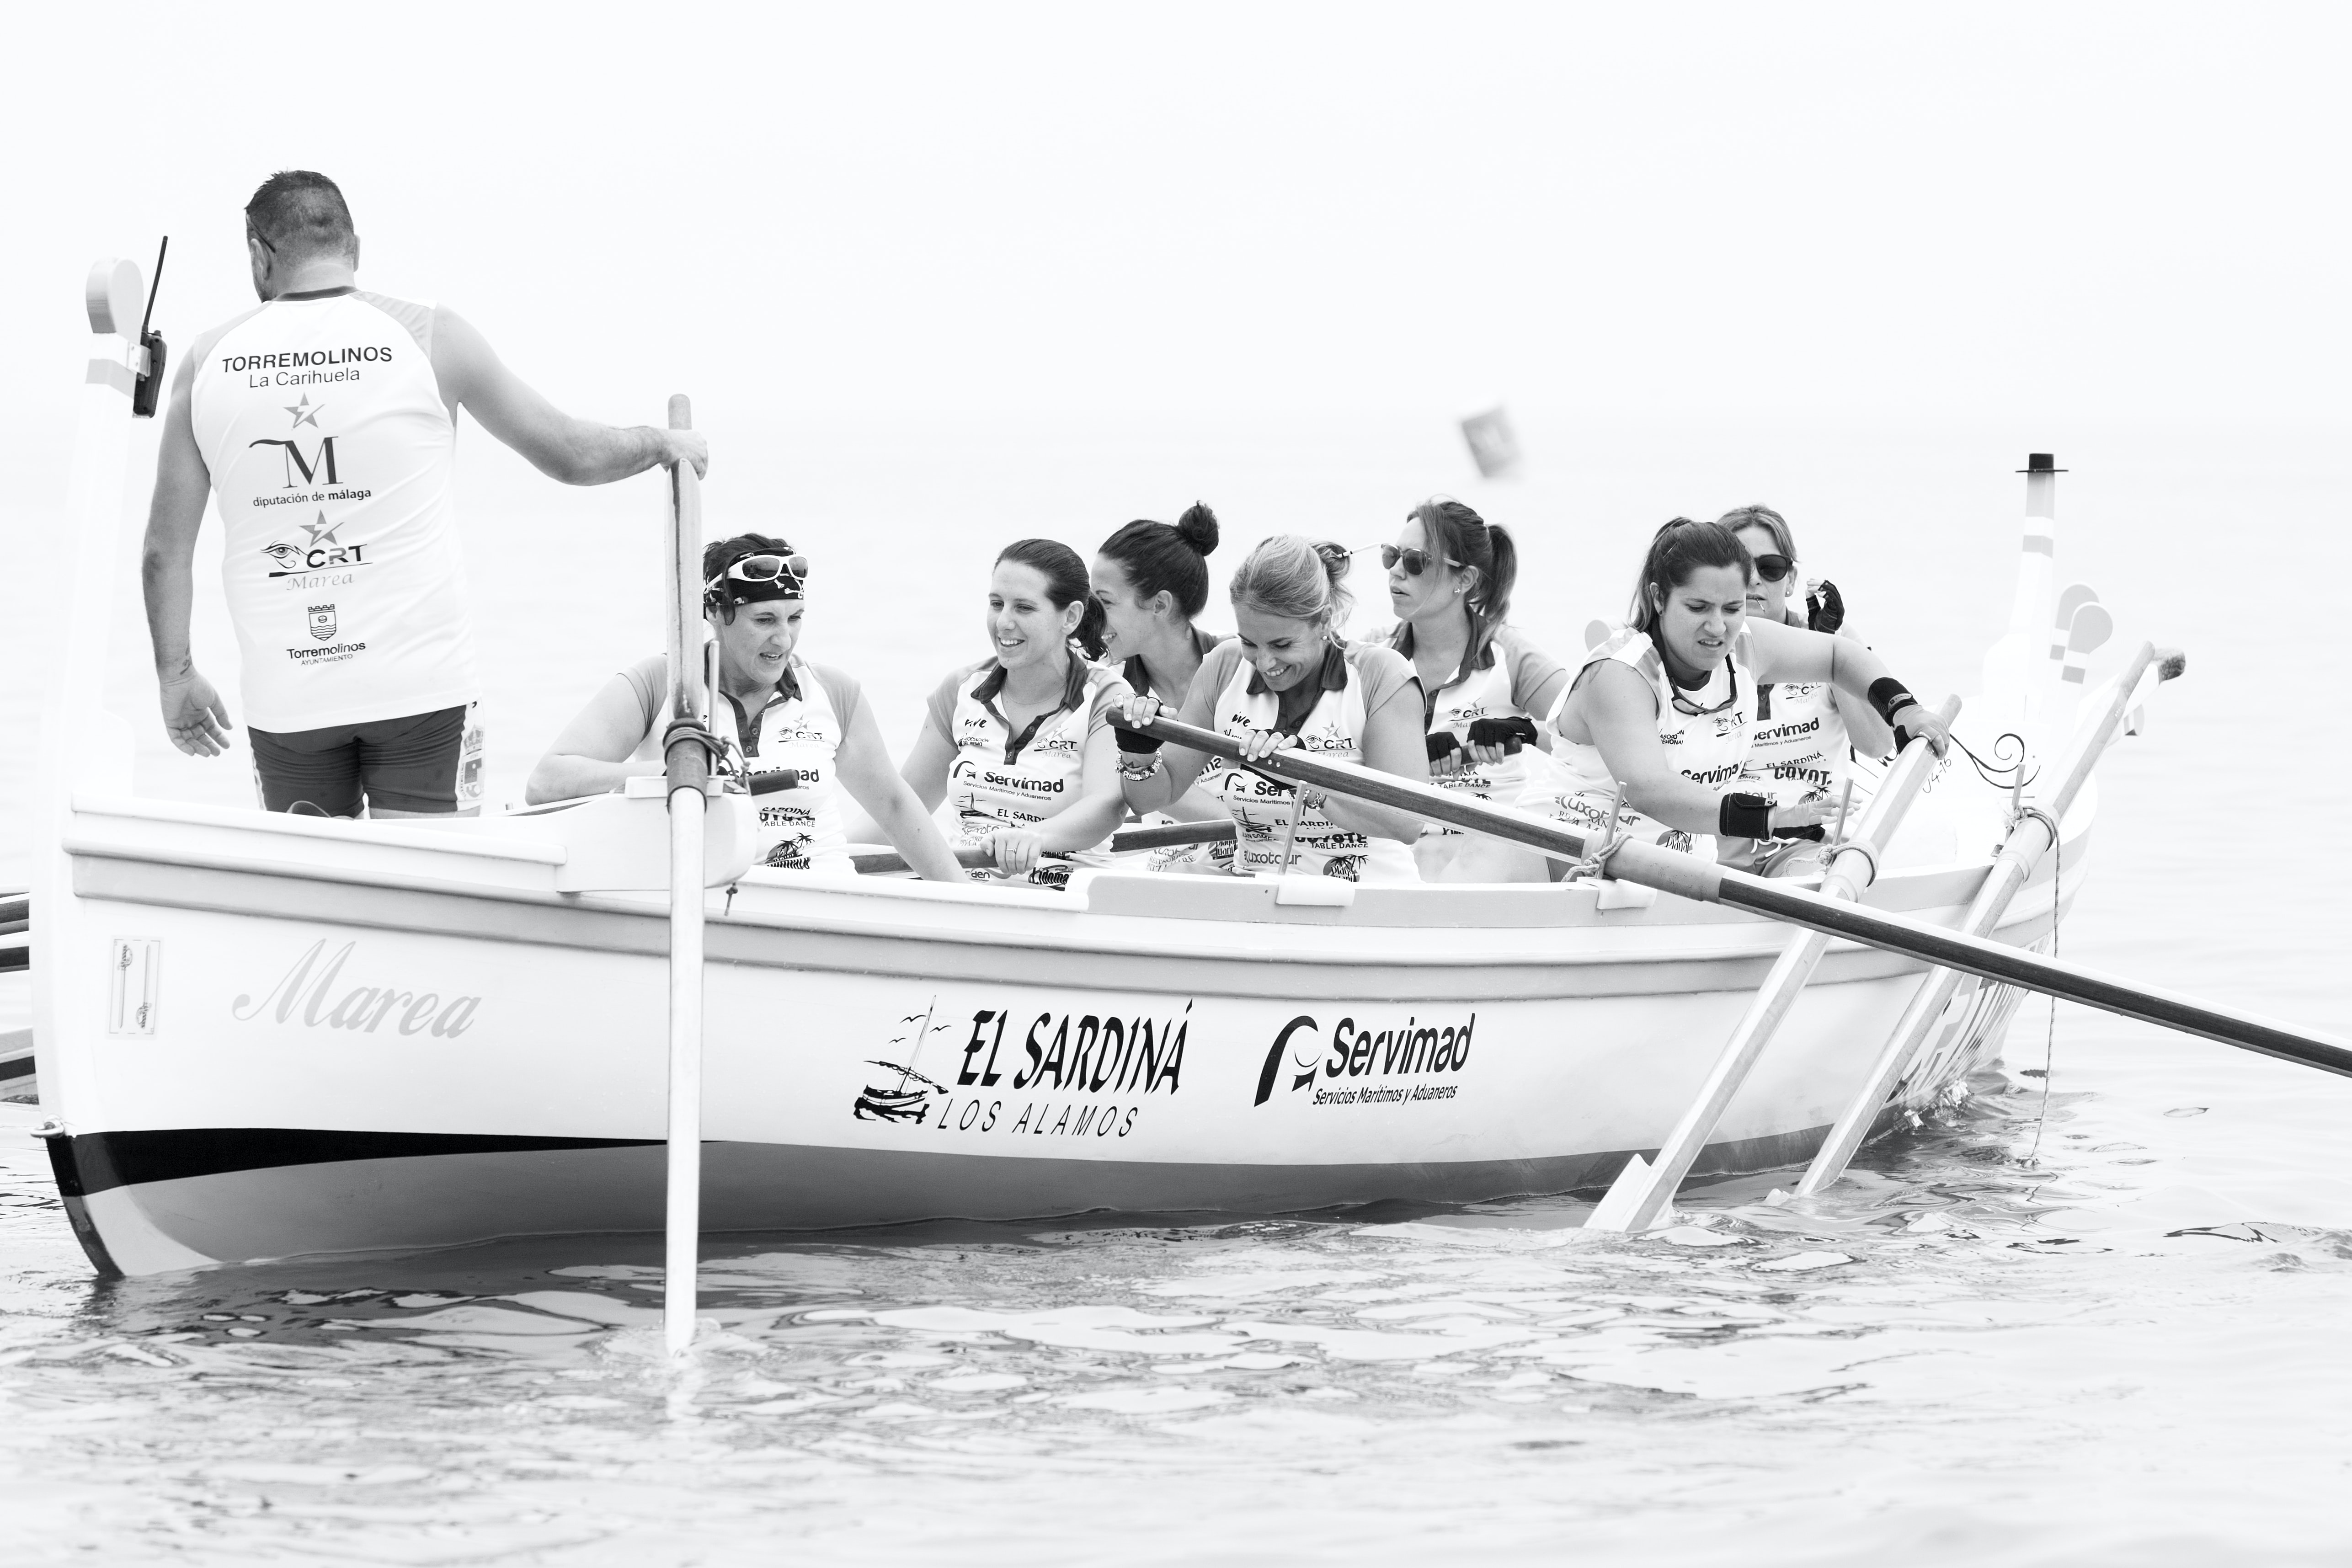 group of people dragon boating